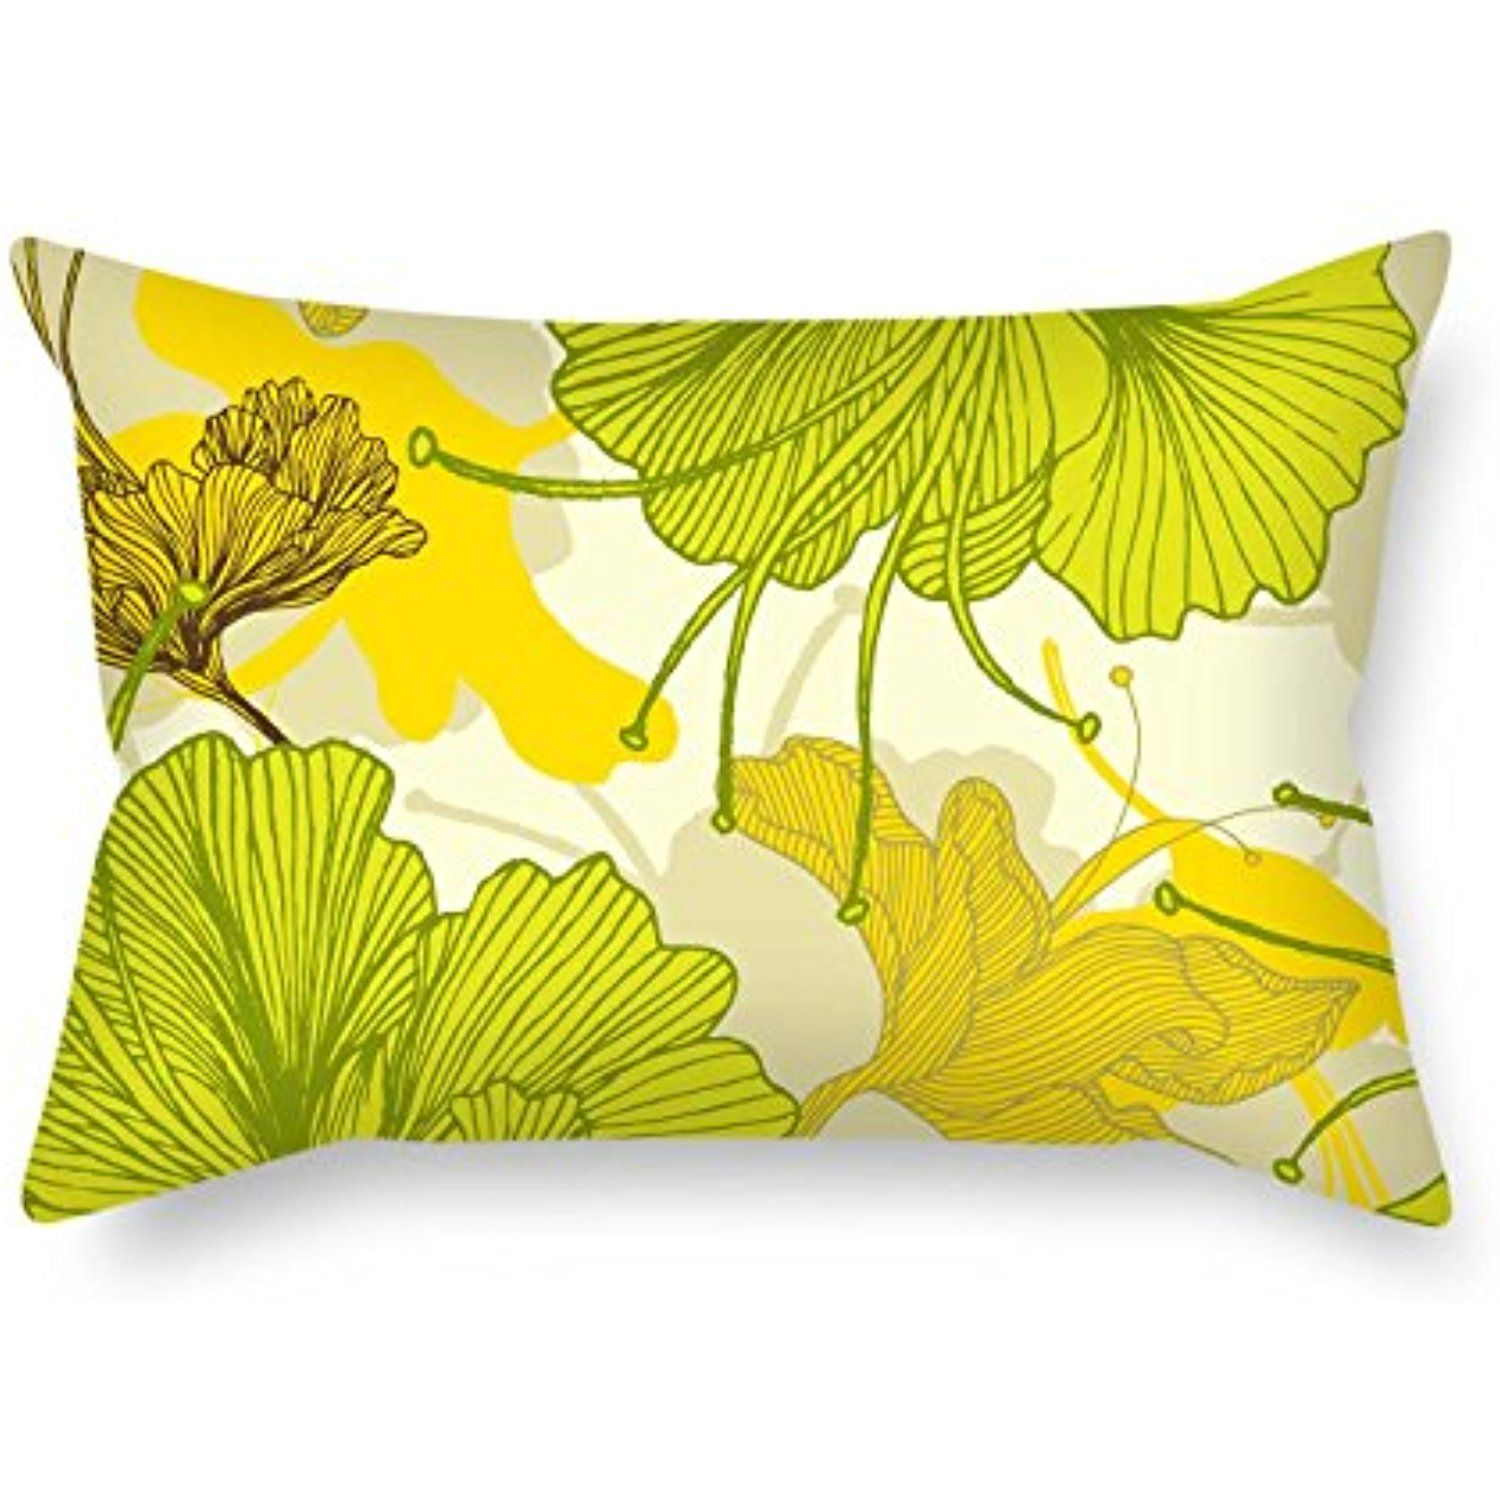 The Flower Pillow Cases Of 20 X 26 Inches / 50 By 65 Cm